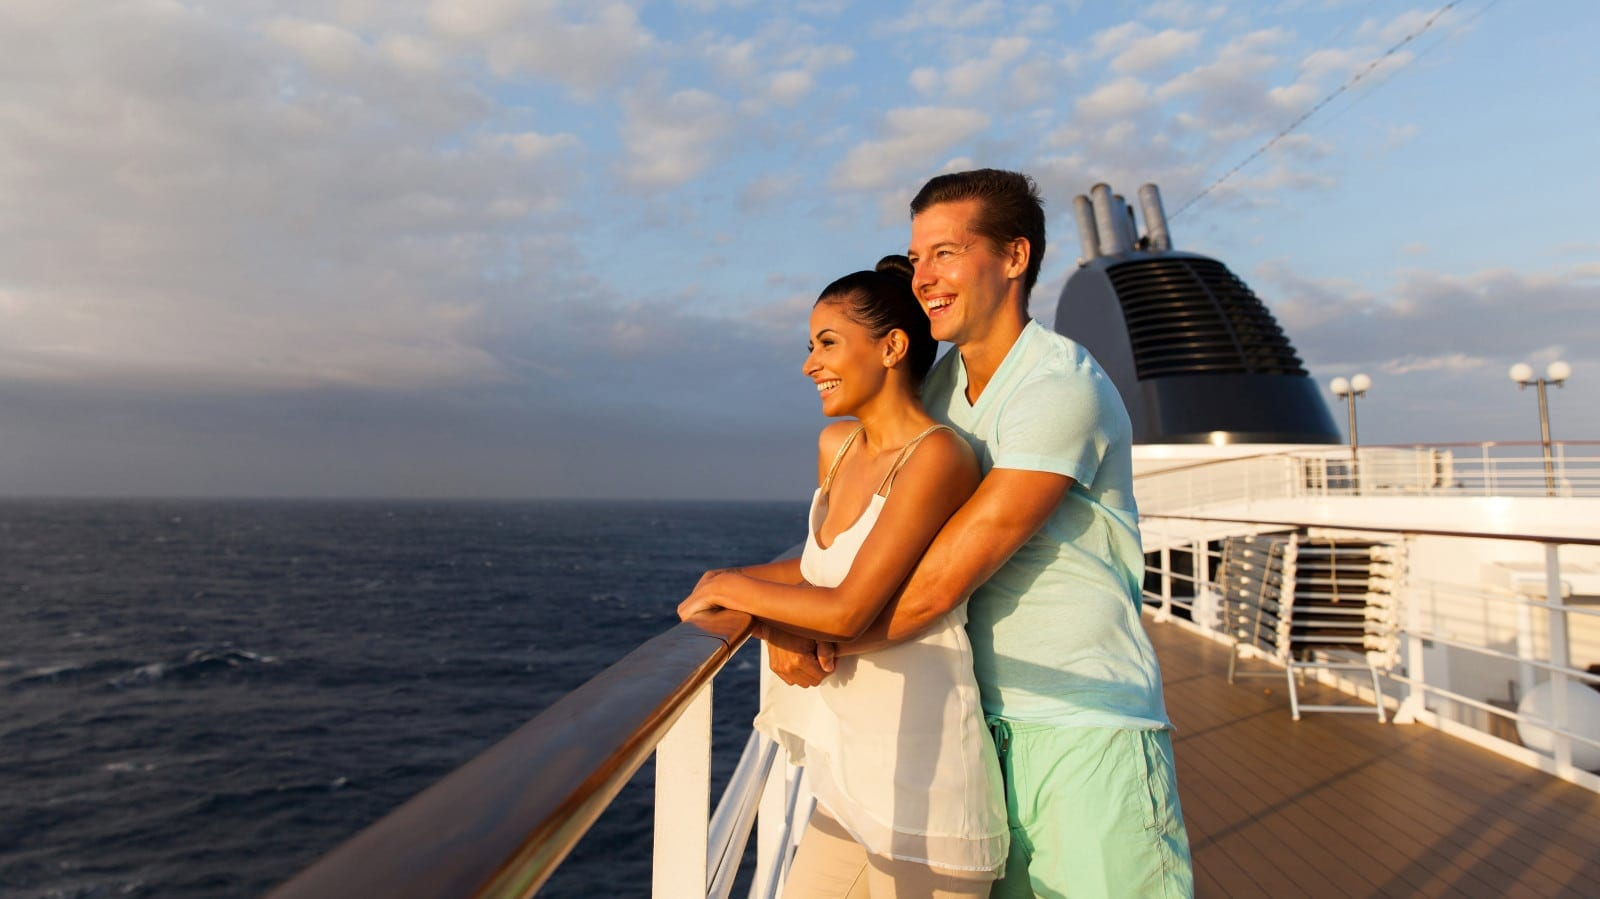 Husband and Wife On A Cruise Ship Stock Photo